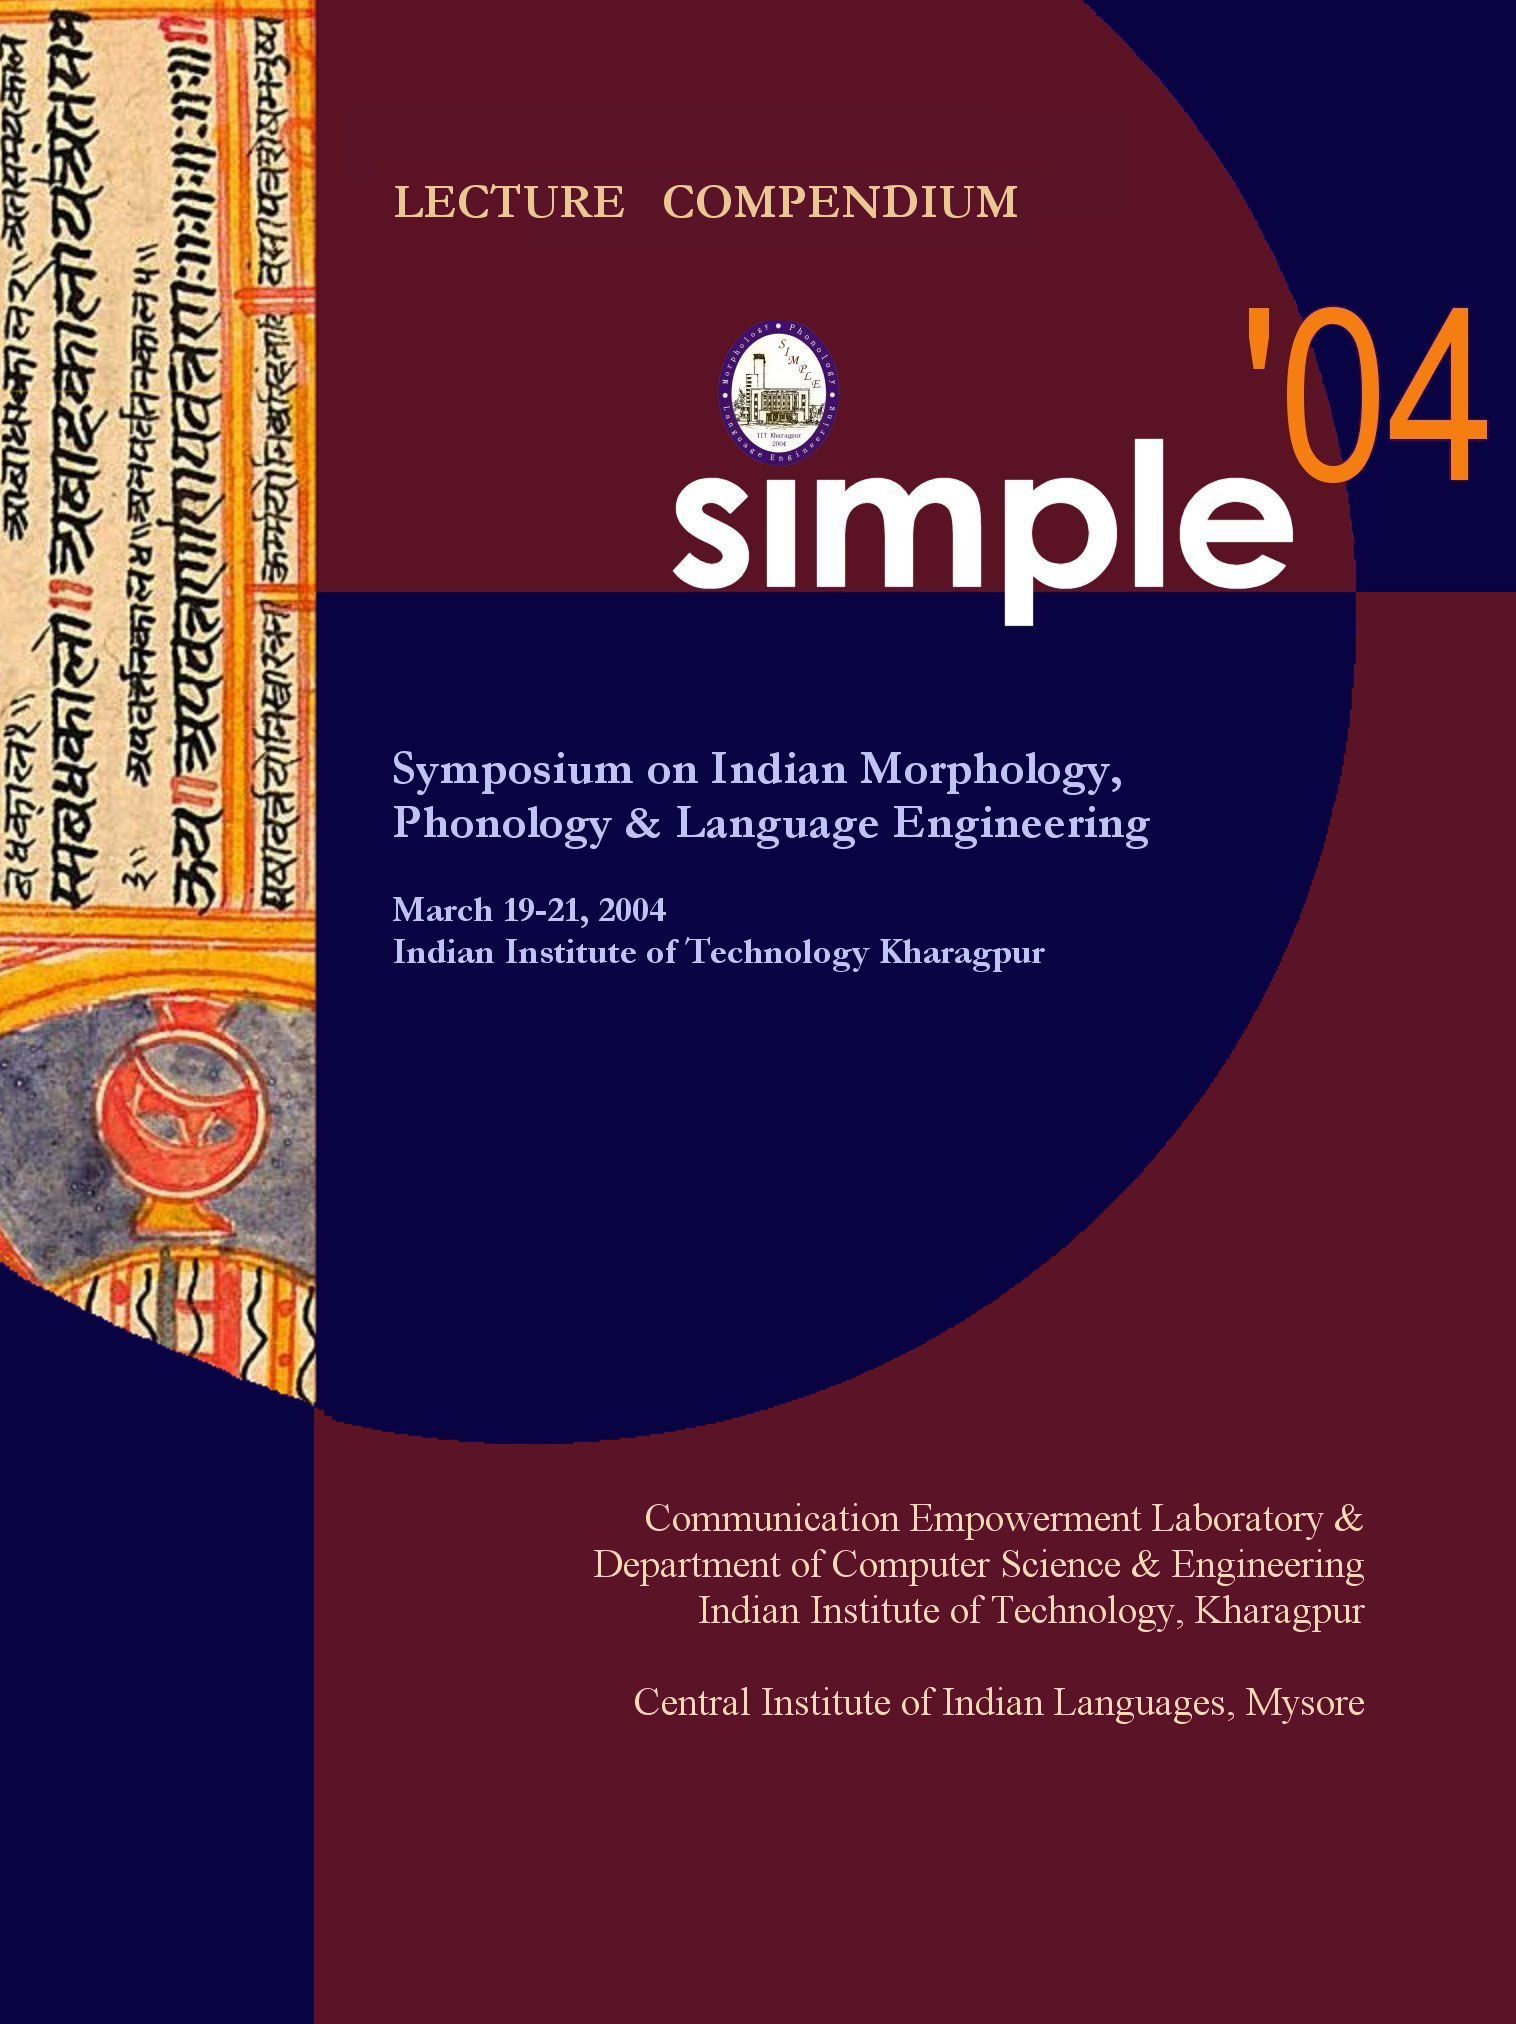 Symposium on Indian Morphology,Phonology & Language Engineering